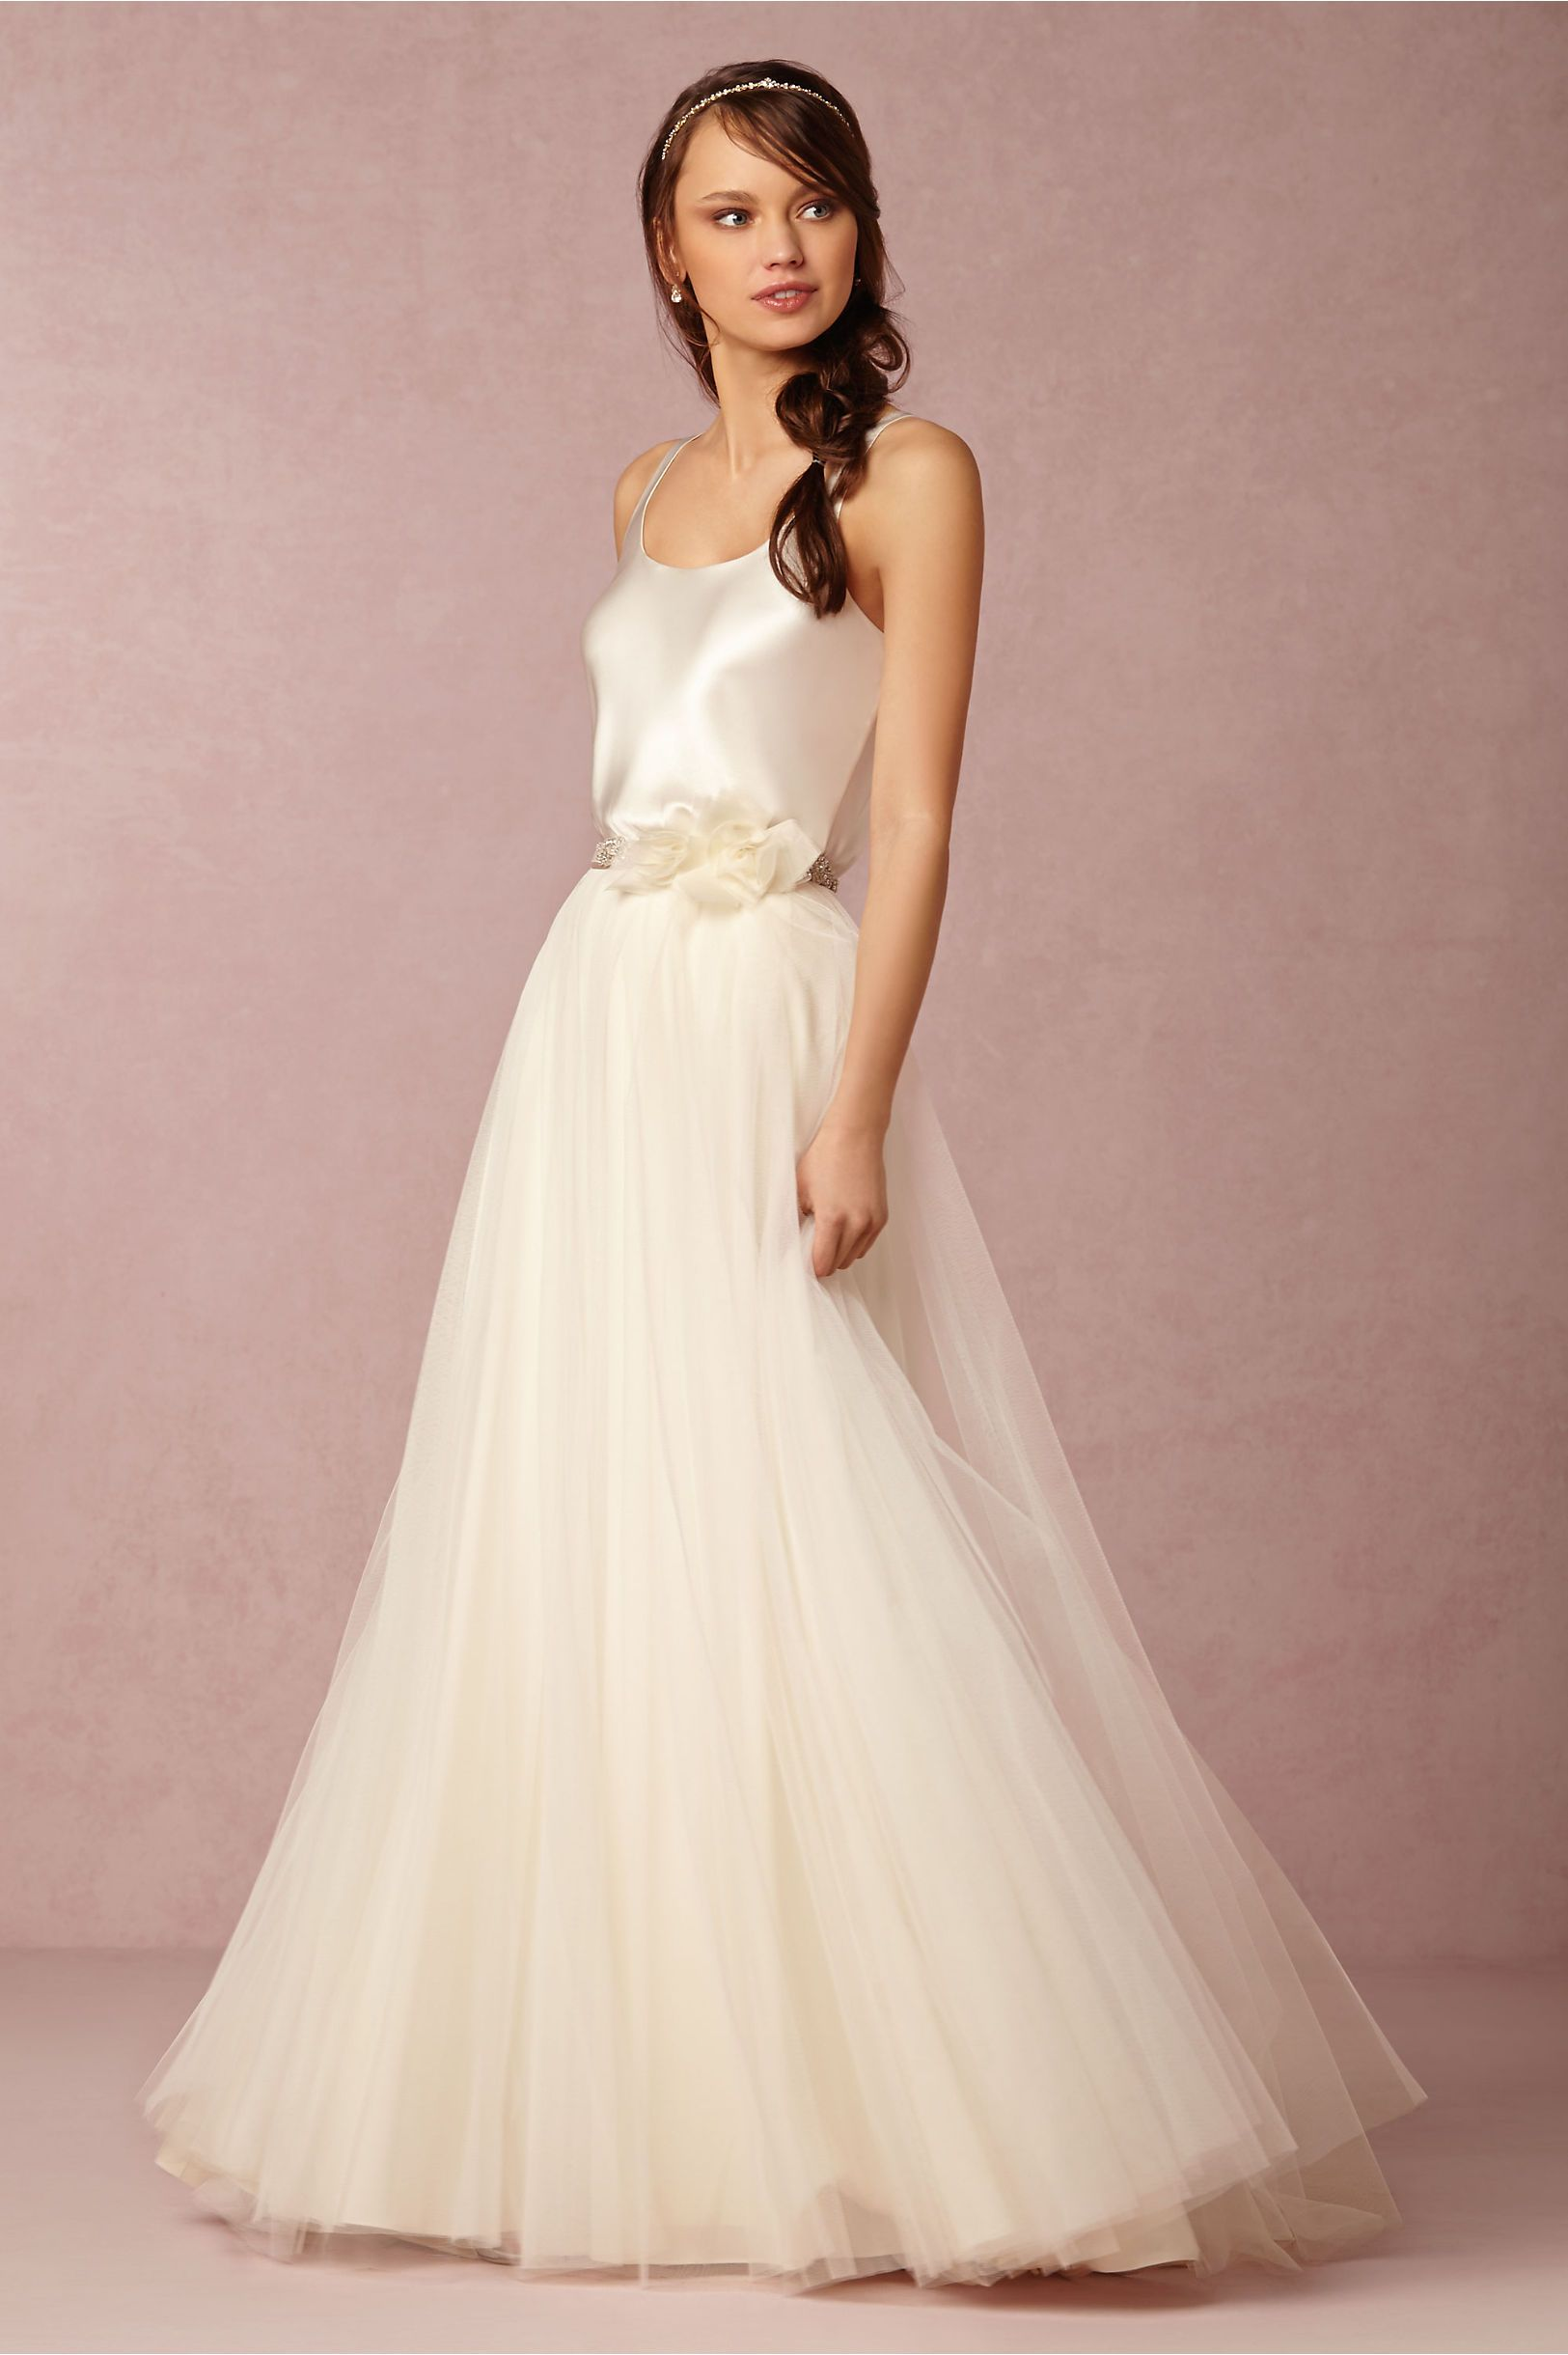 Gracia Skirt And Perpetuity Camisole In Bride Wedding Dresses At Bhldn